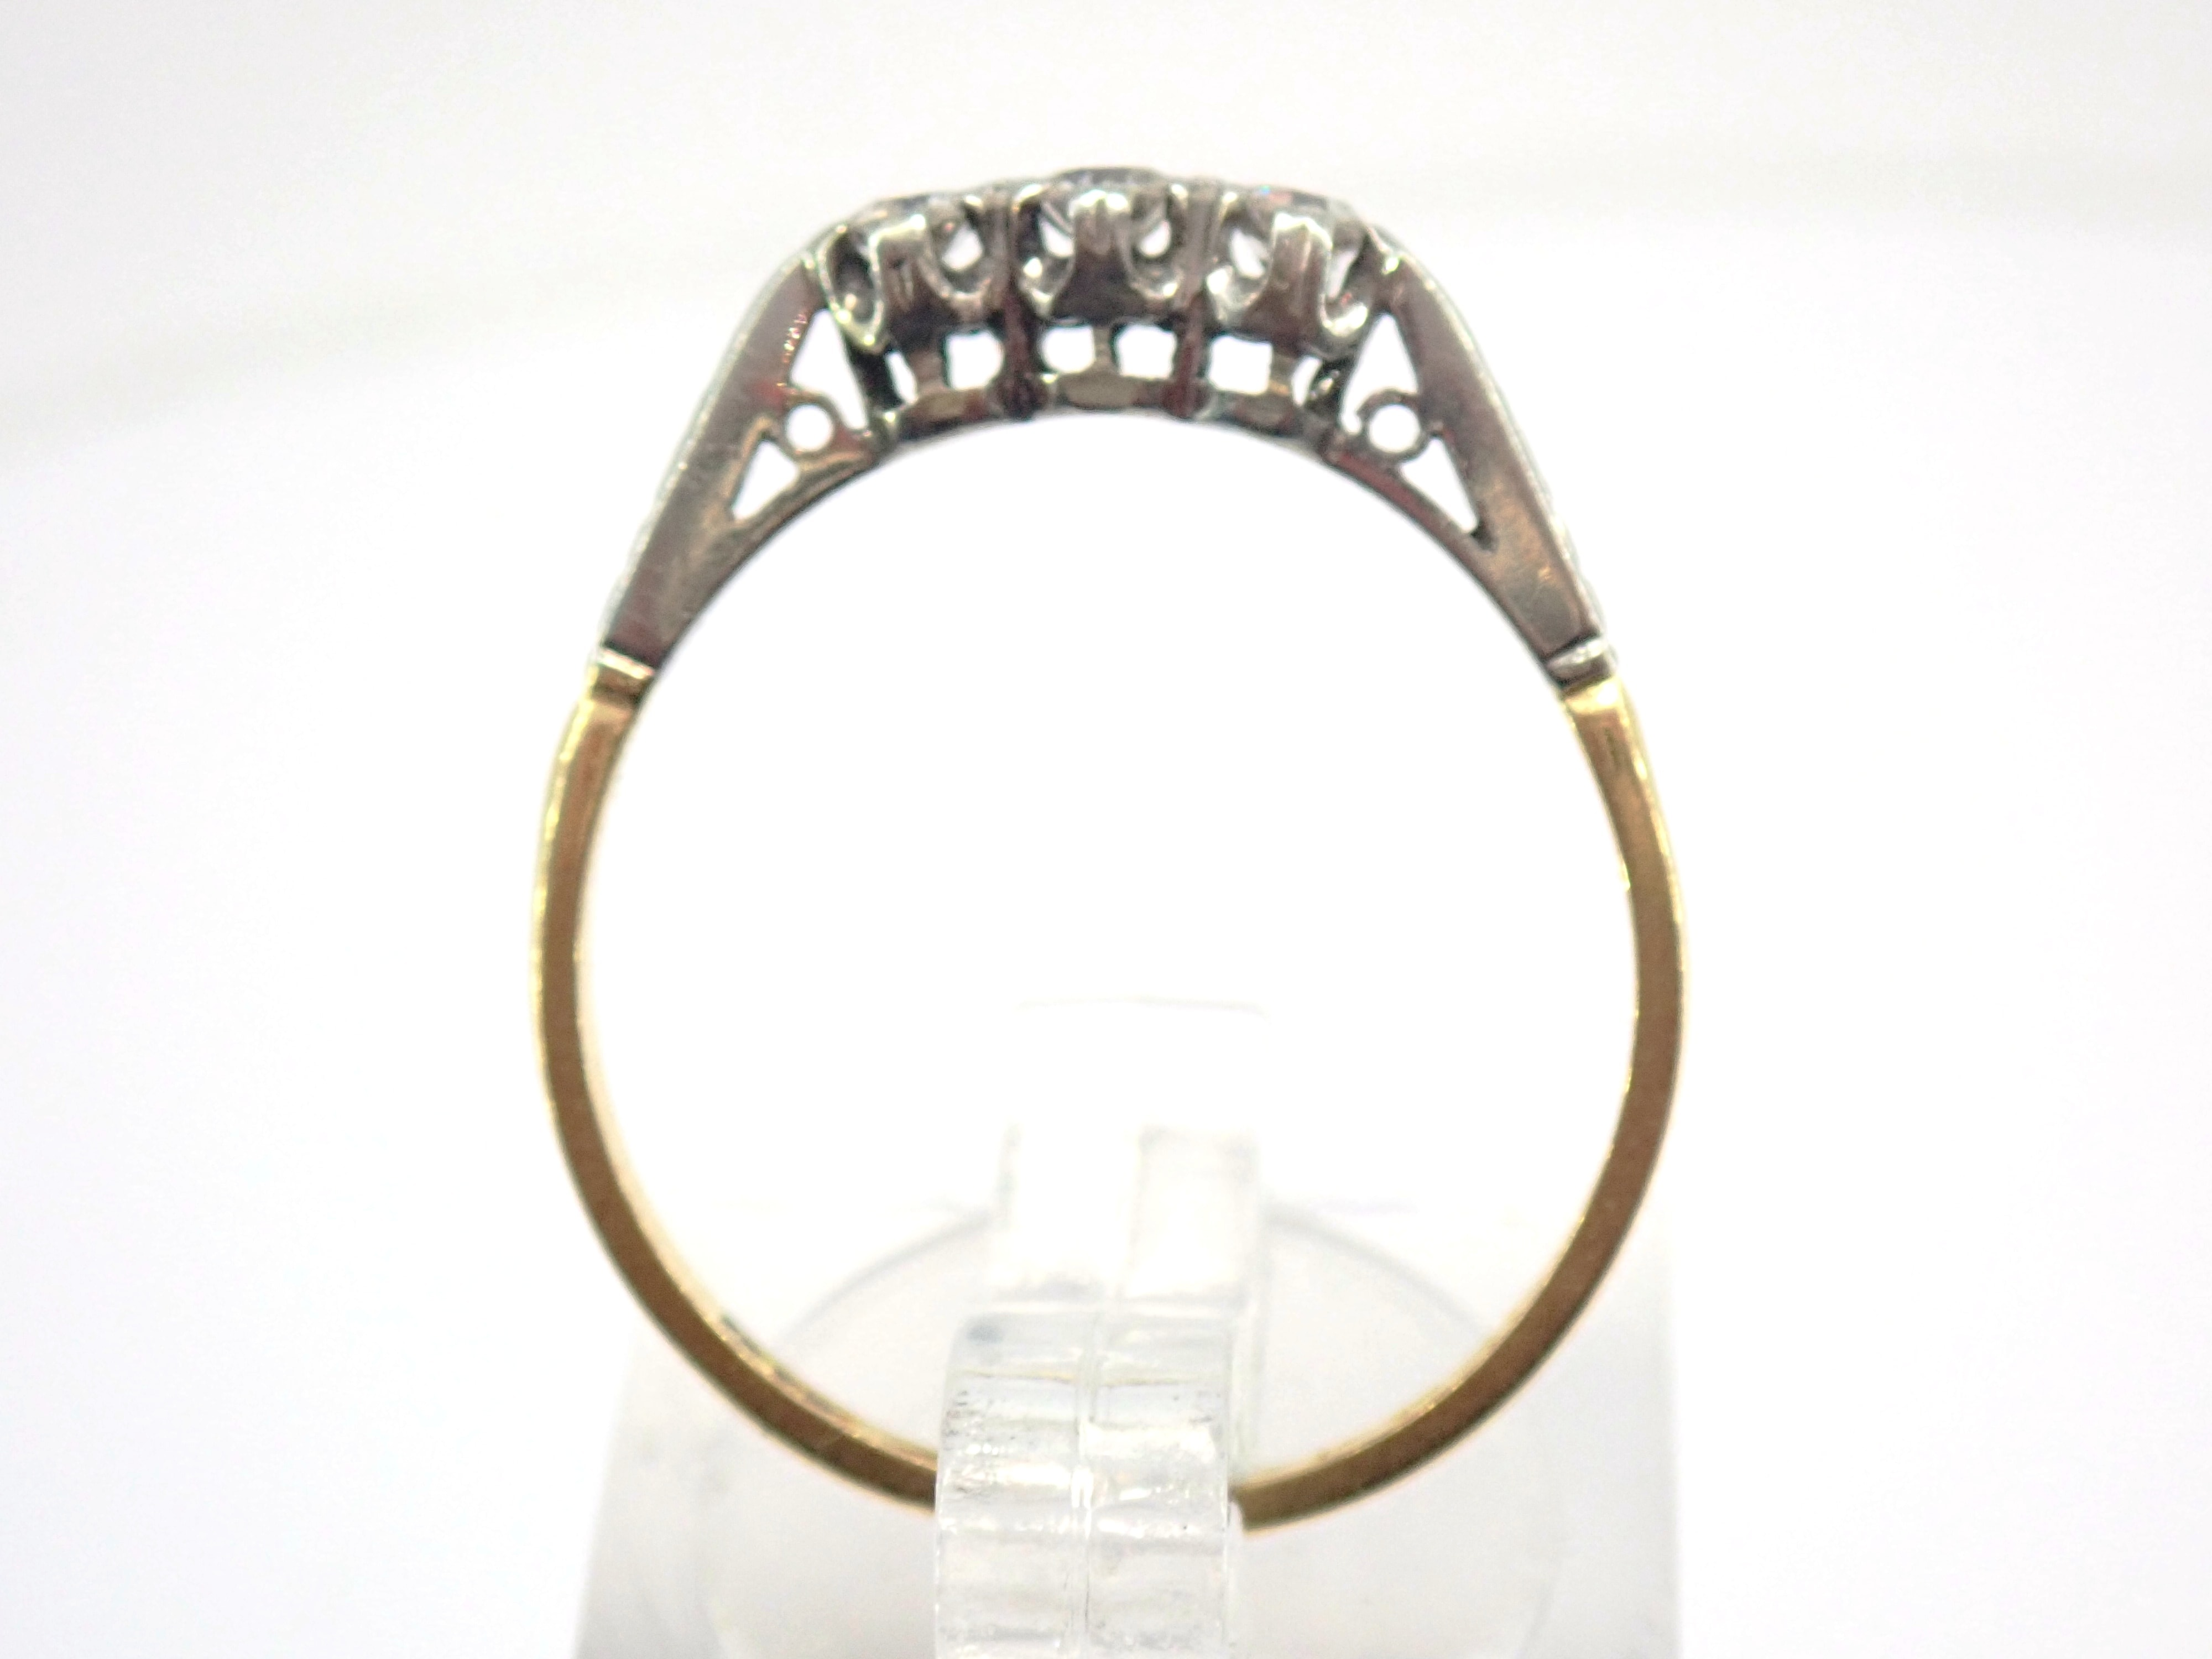 AA000902 - 18K Gold & Platinum Trilogy Diamond 0.30ct Ring Size Q  2.0gms #70